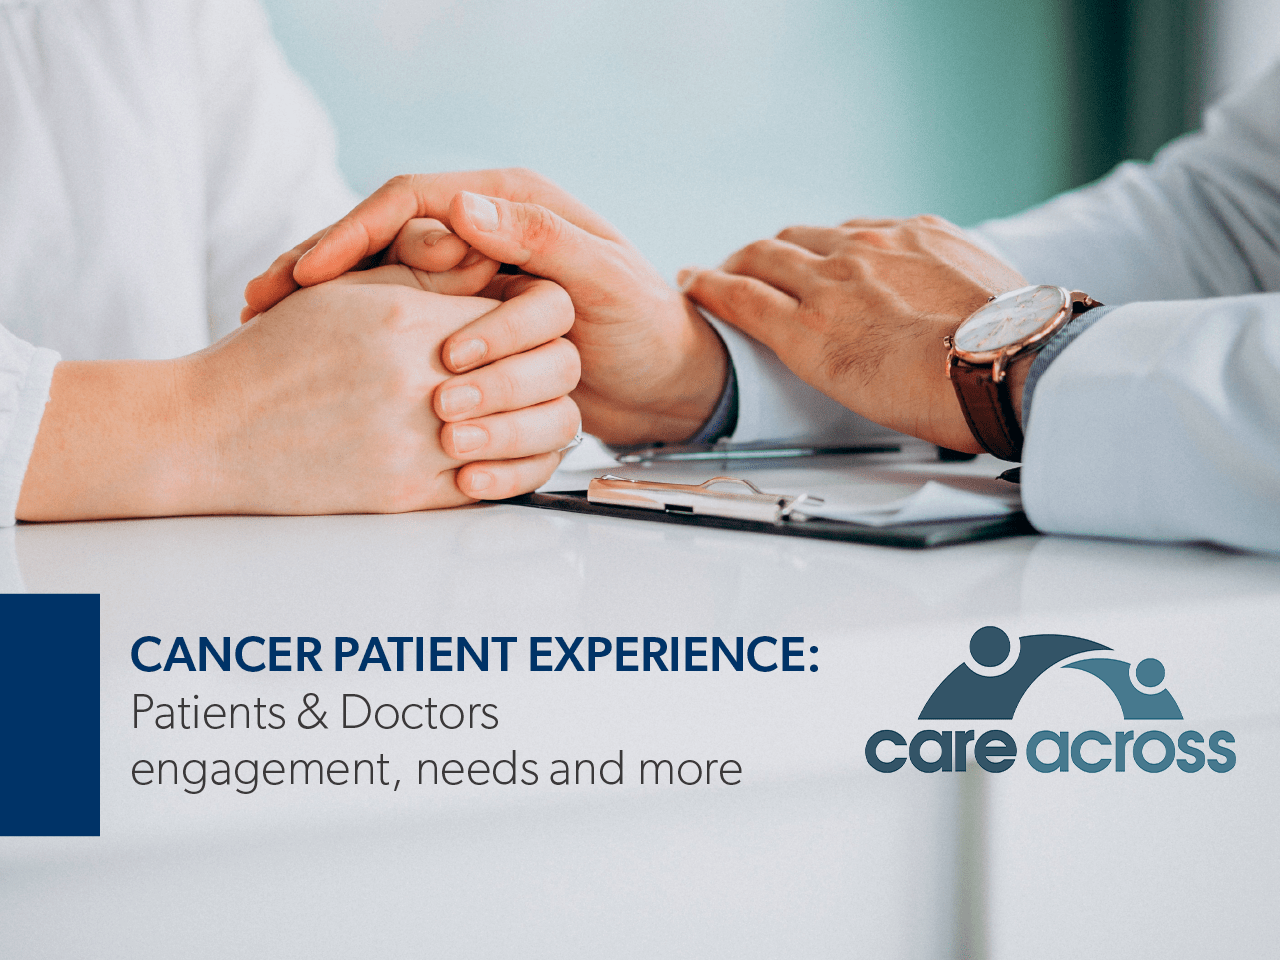 Cancer Patient Experience: engagement, needs and more